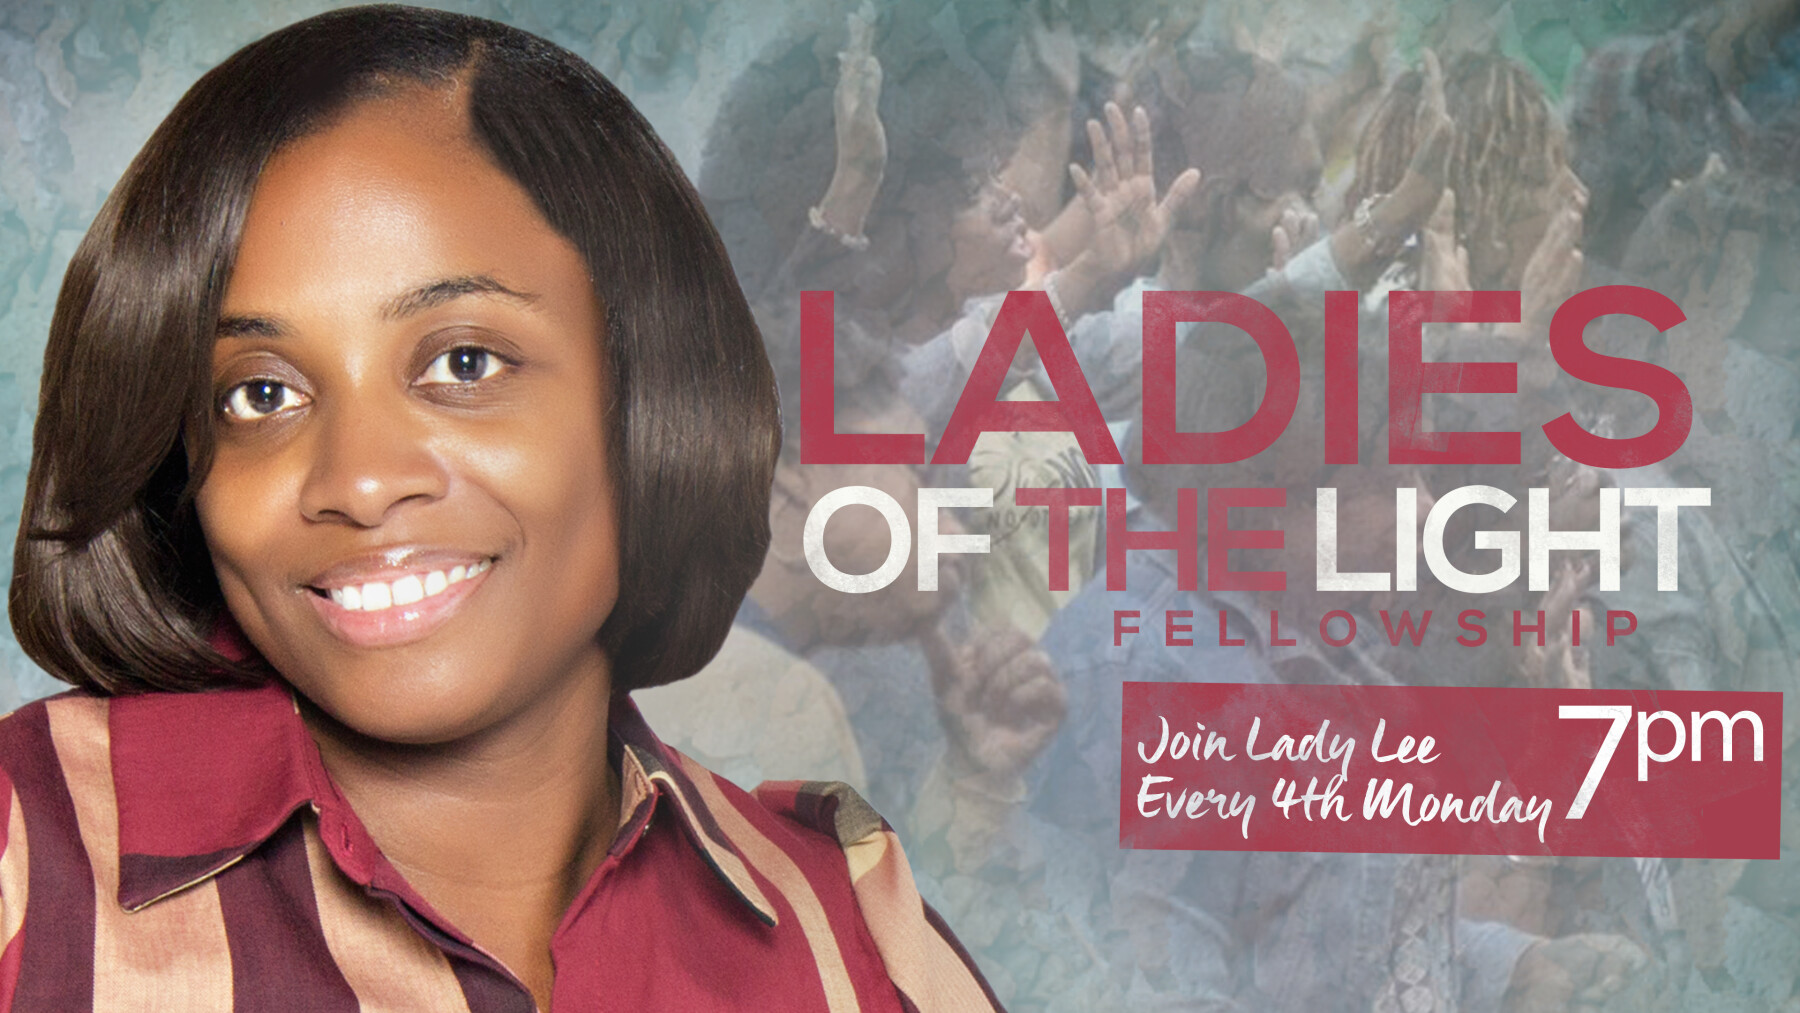 Ladies of The Light Fellowship